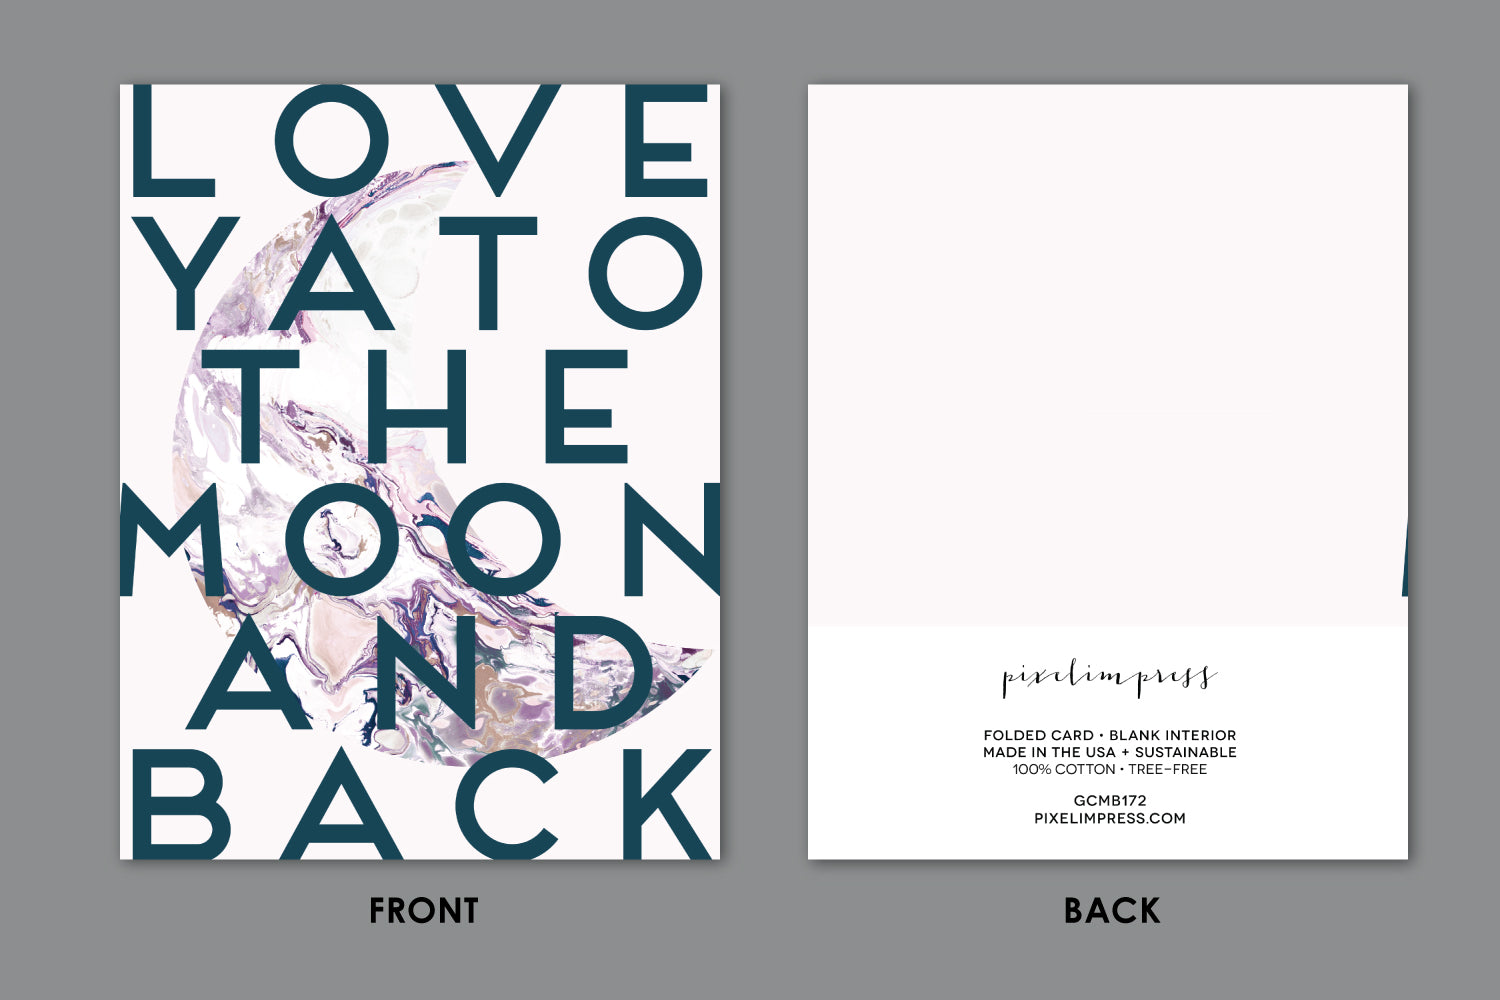 Love ya to the moon and back blush pink marble greeting card love ya to the moon and back blush pink marble greeting card m4hsunfo